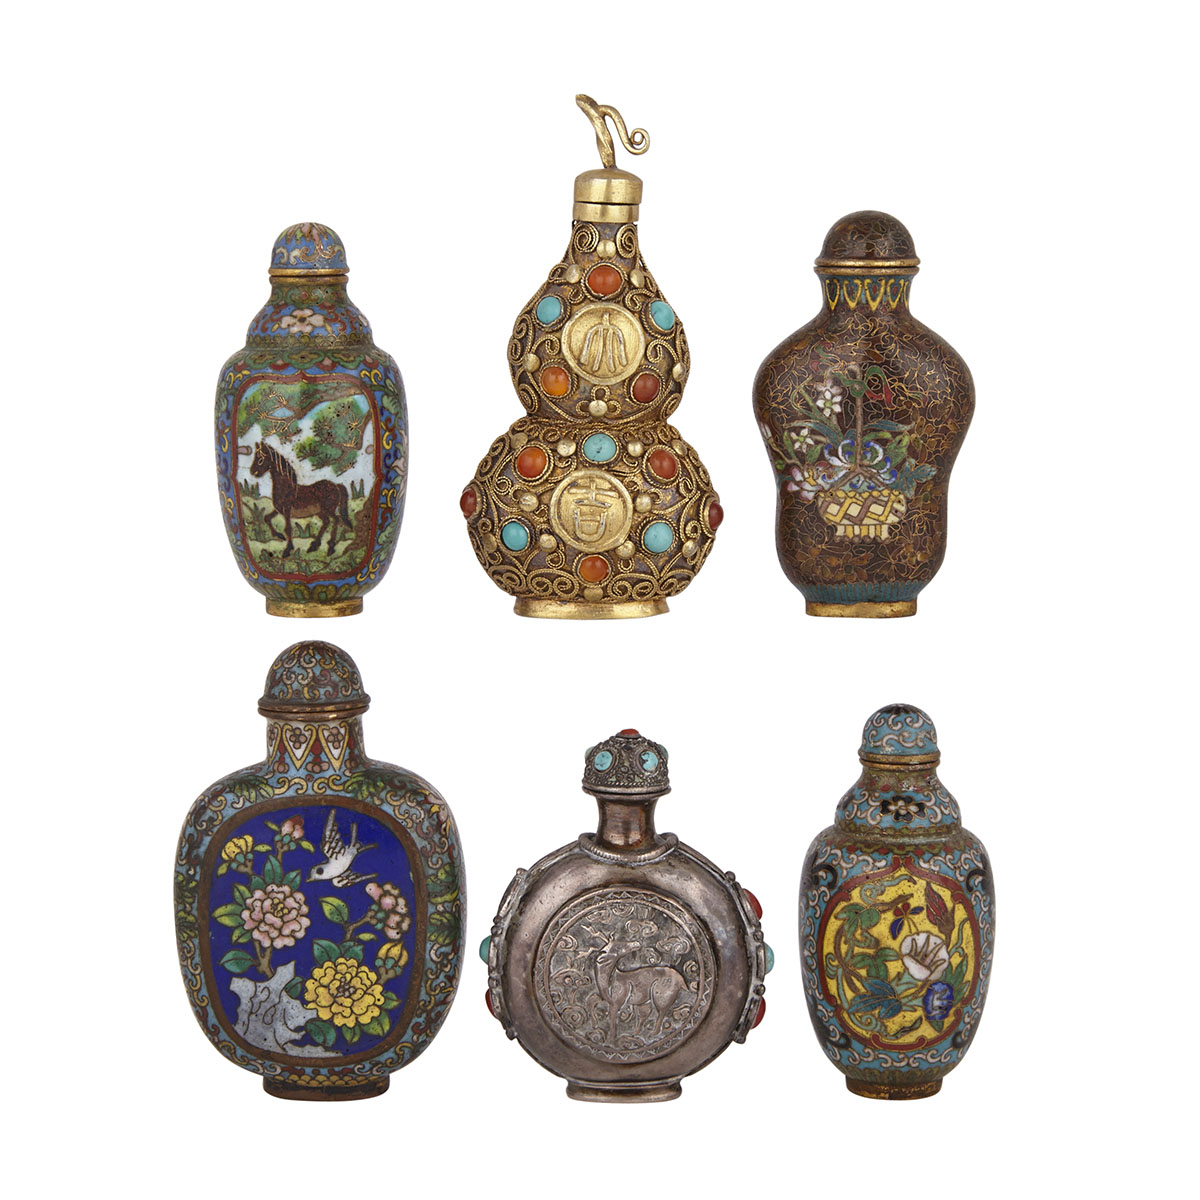 Group of Six Snuff Bottles, 19th to 20th Century